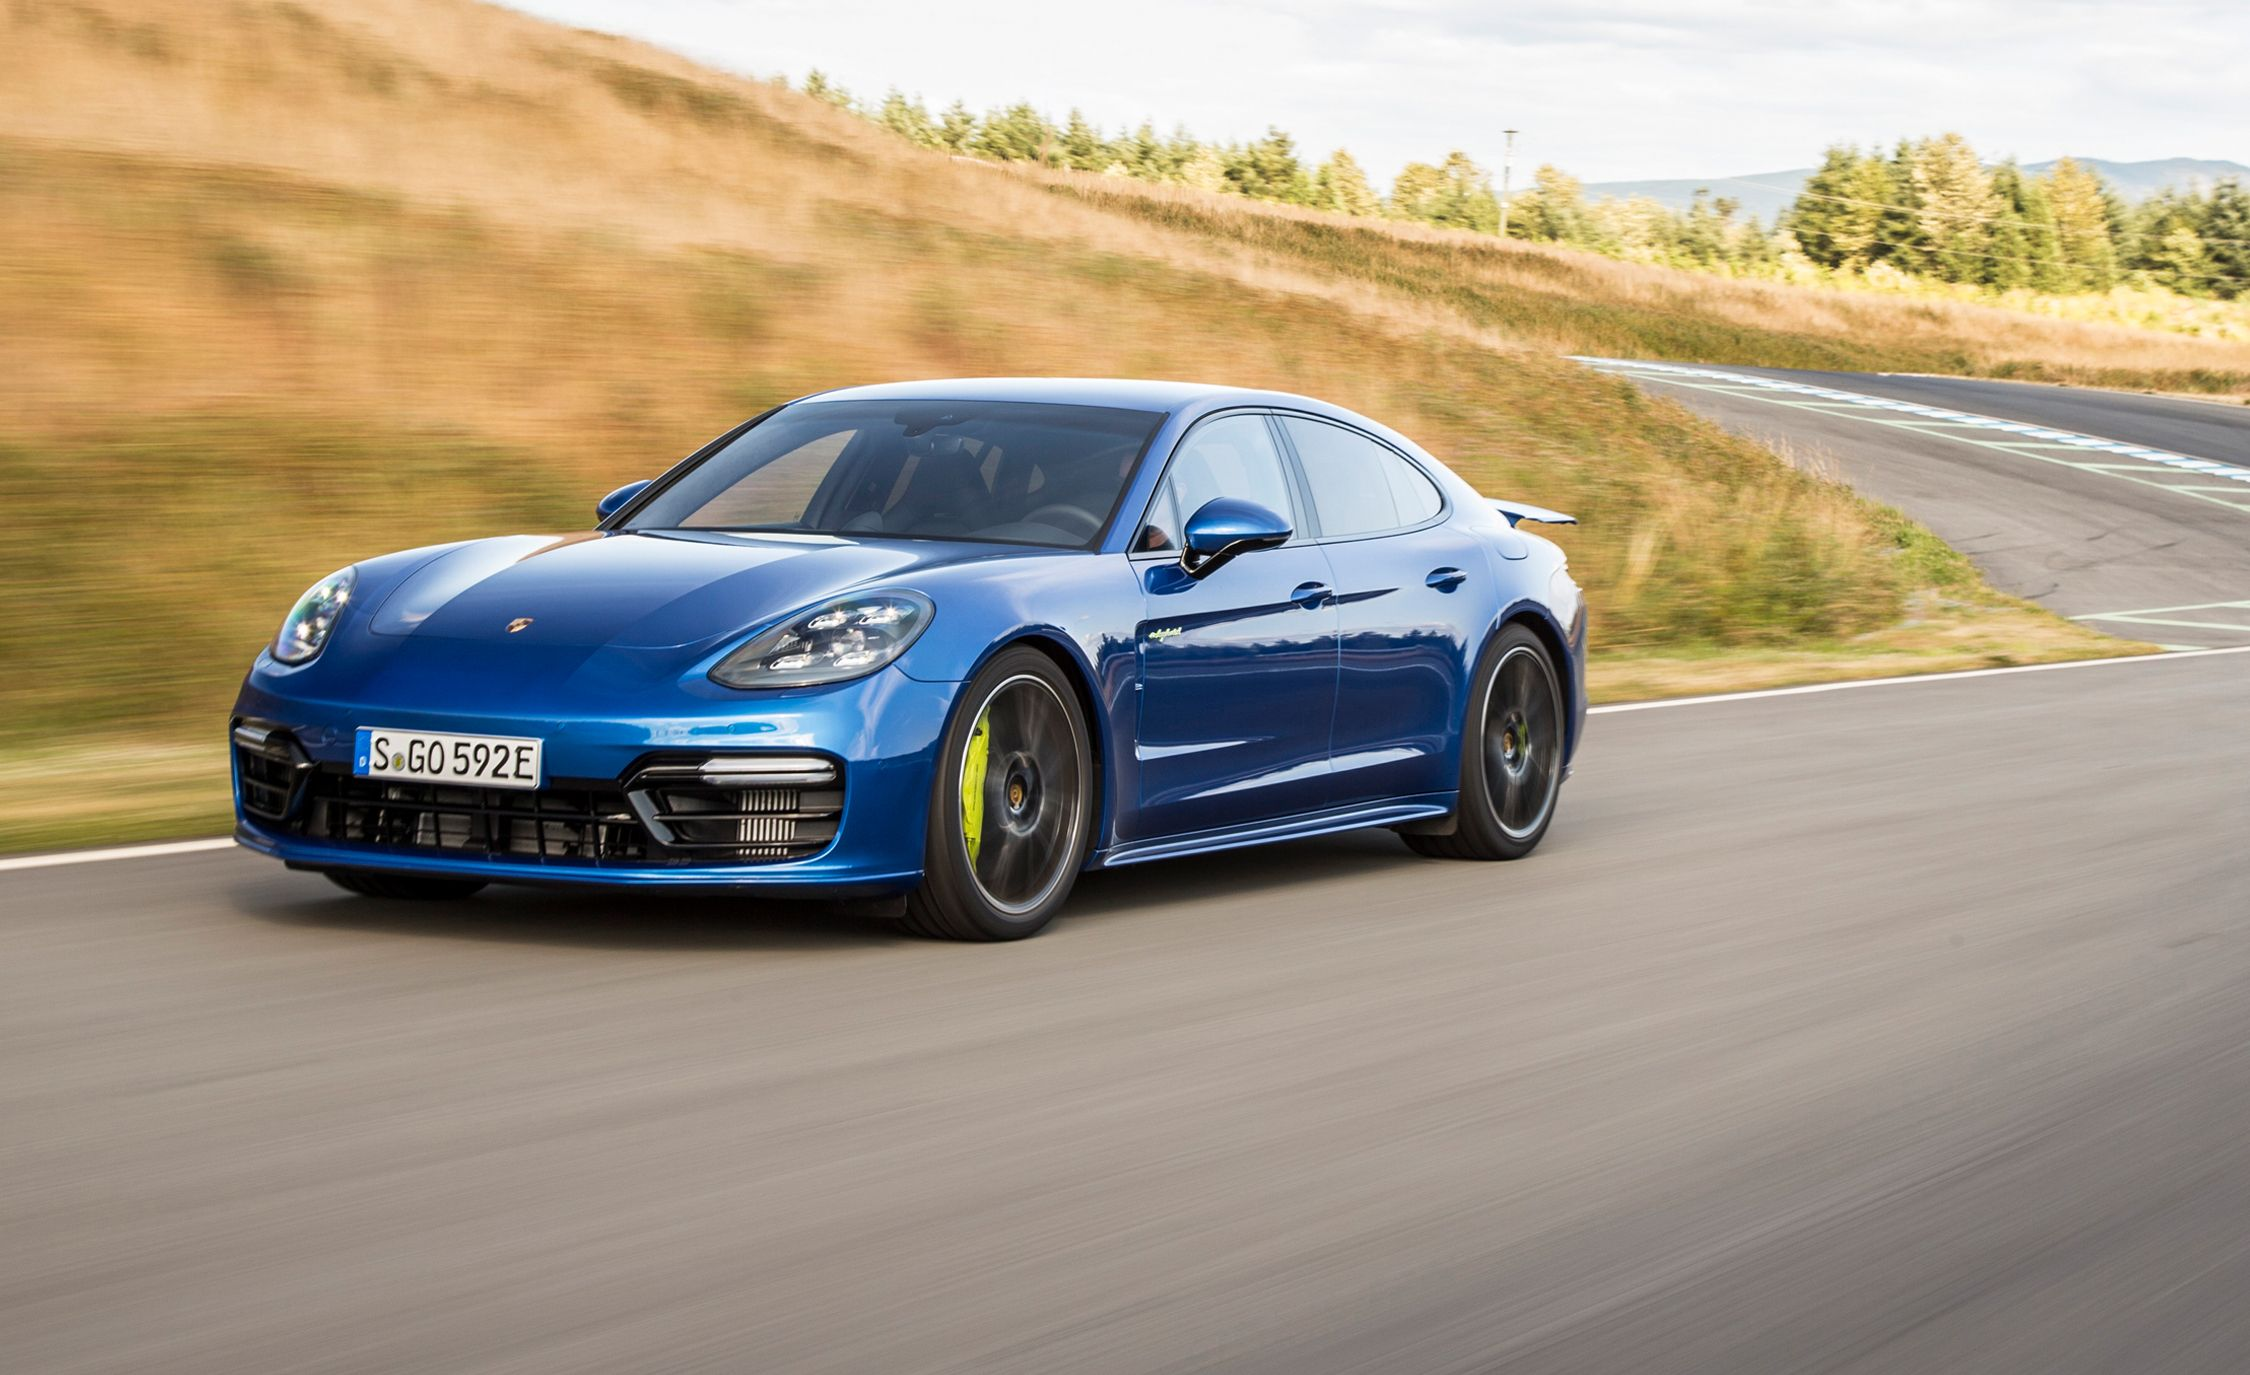 2019 Porsche Panamera Turbo S Reviews Price Photos And Specs Car Driver